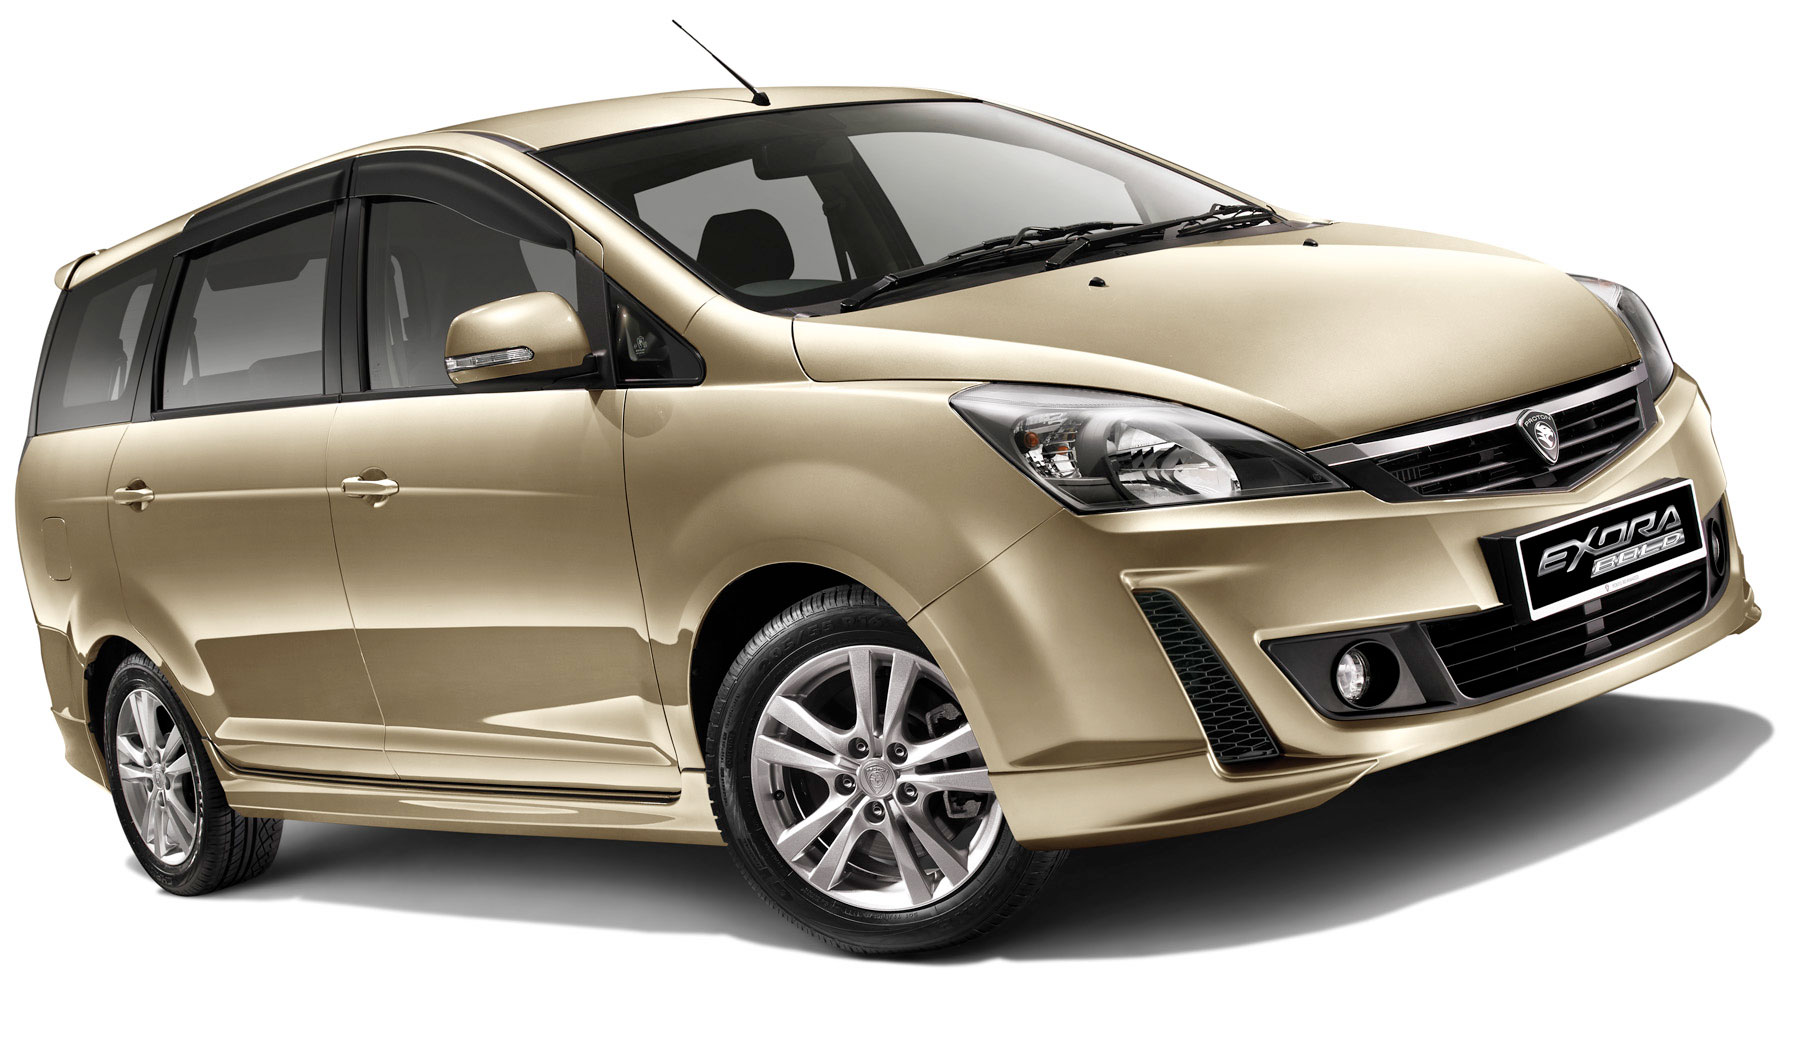 proton exora 2 Looking to buy a new proton exora in malaysia research proton exora car prices, specs, safety, reviews & ratings at carbasemy you can also compare the proton exora against its rivals in malaysia.